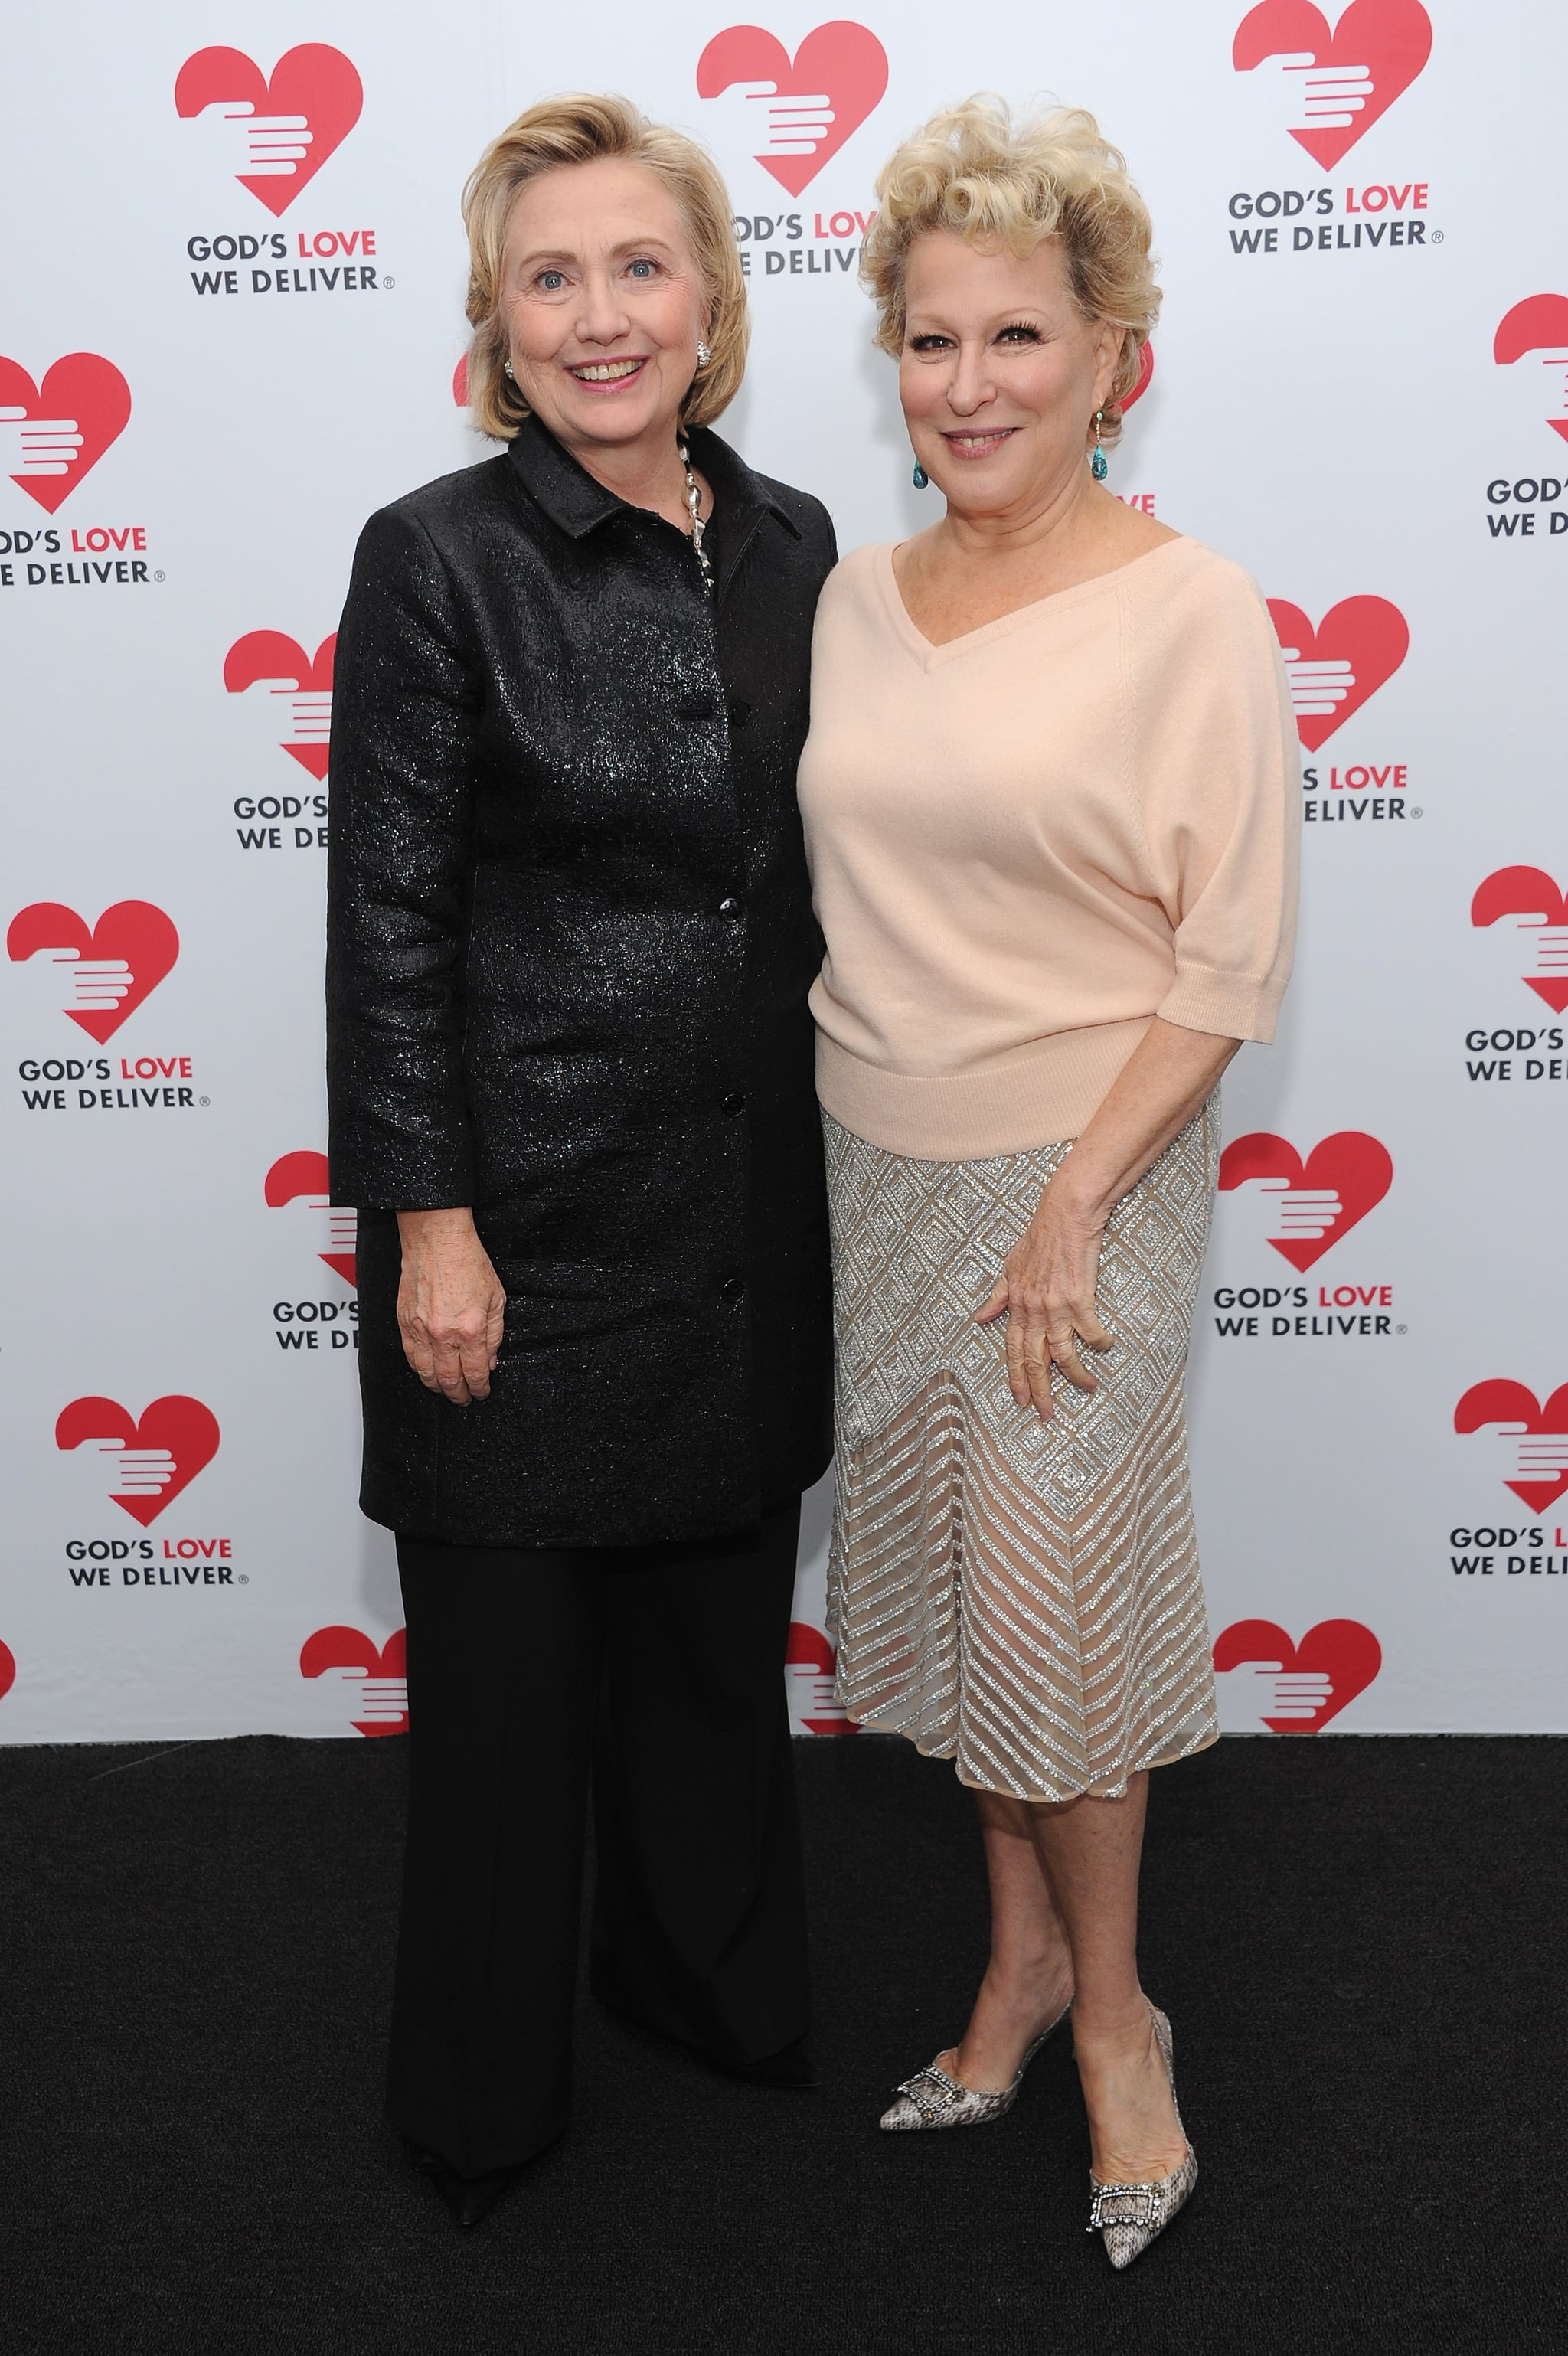 Some of Hollywood's Most Powerful Women Come Together For a Good Cause